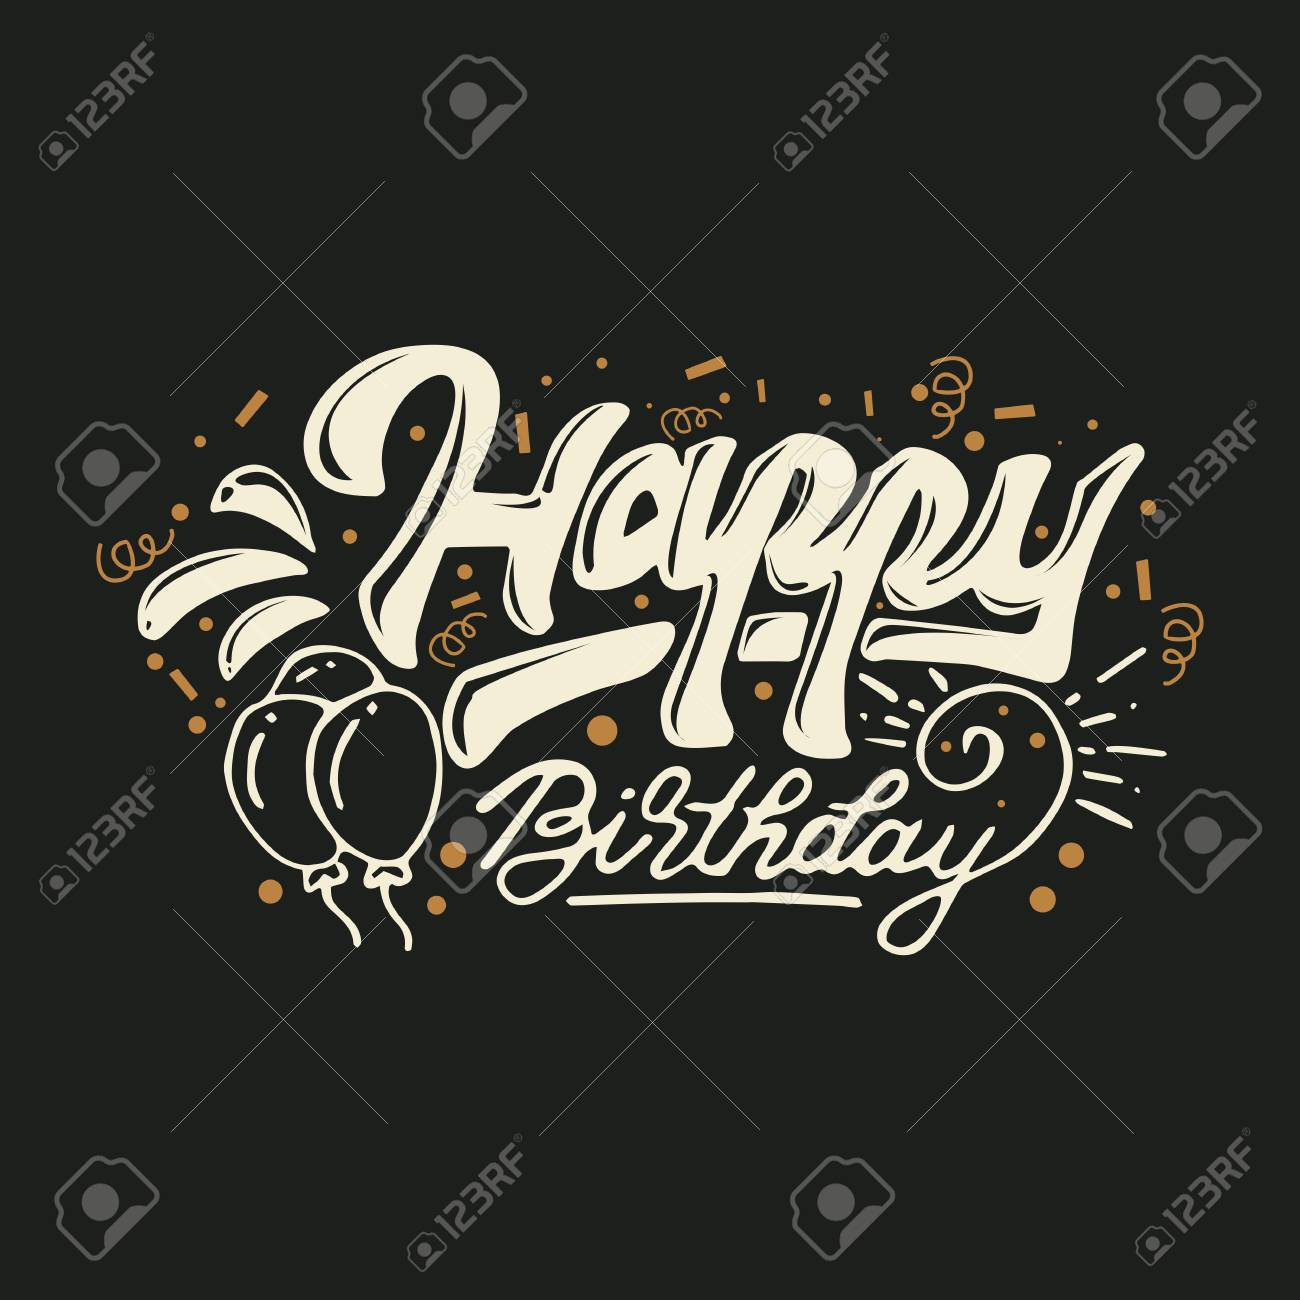 Happy Birthday Greeting Card Vector Illustration Royalty Free